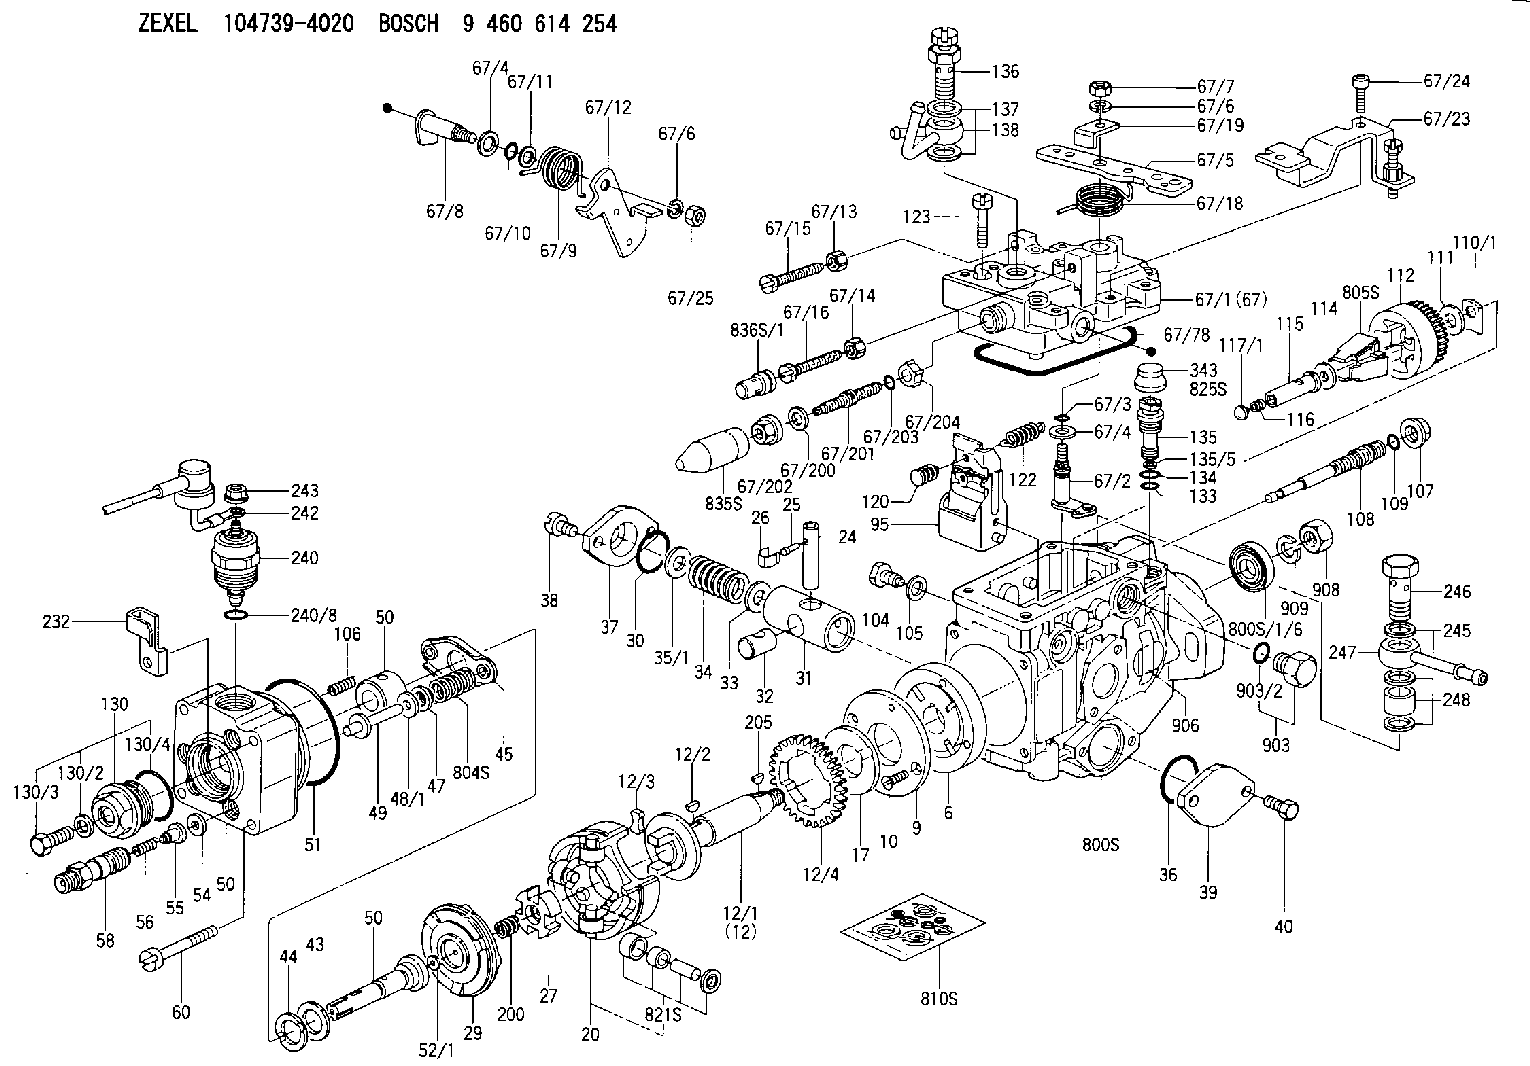 104739-4020 ZEXEL INJECTION-PUMP ASSEMBLY